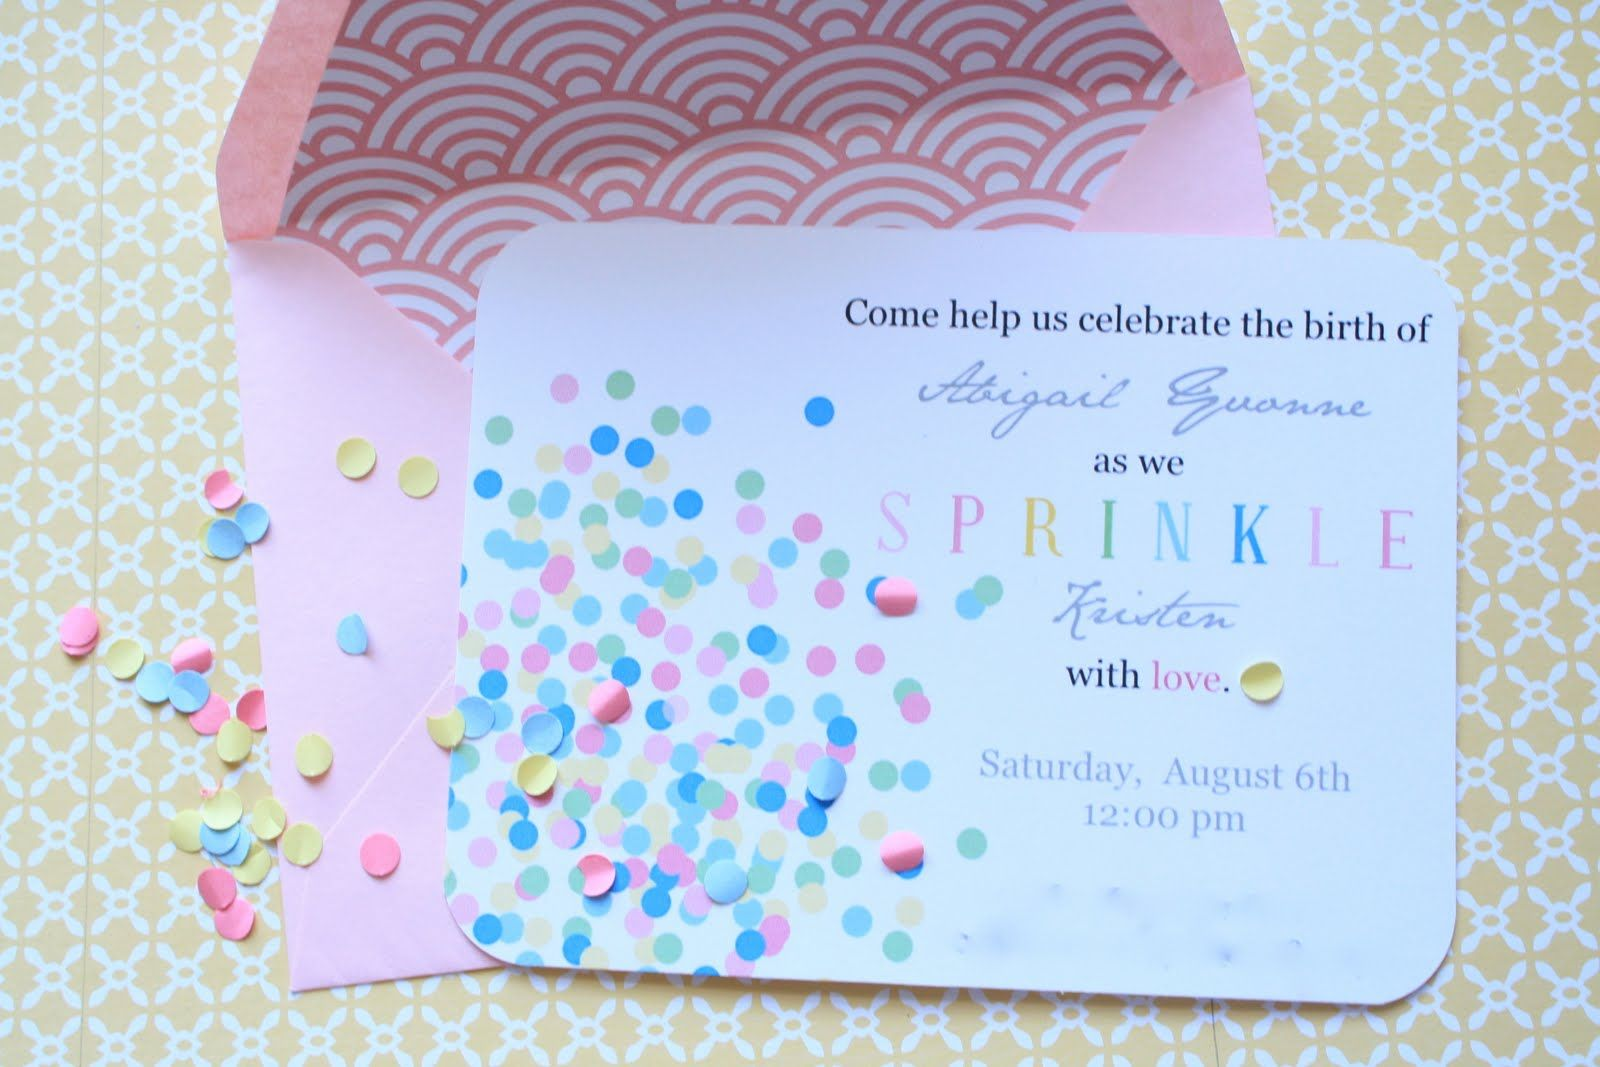 Second Baby Shower Called A Sprinkle Sprinkle Baby Shower